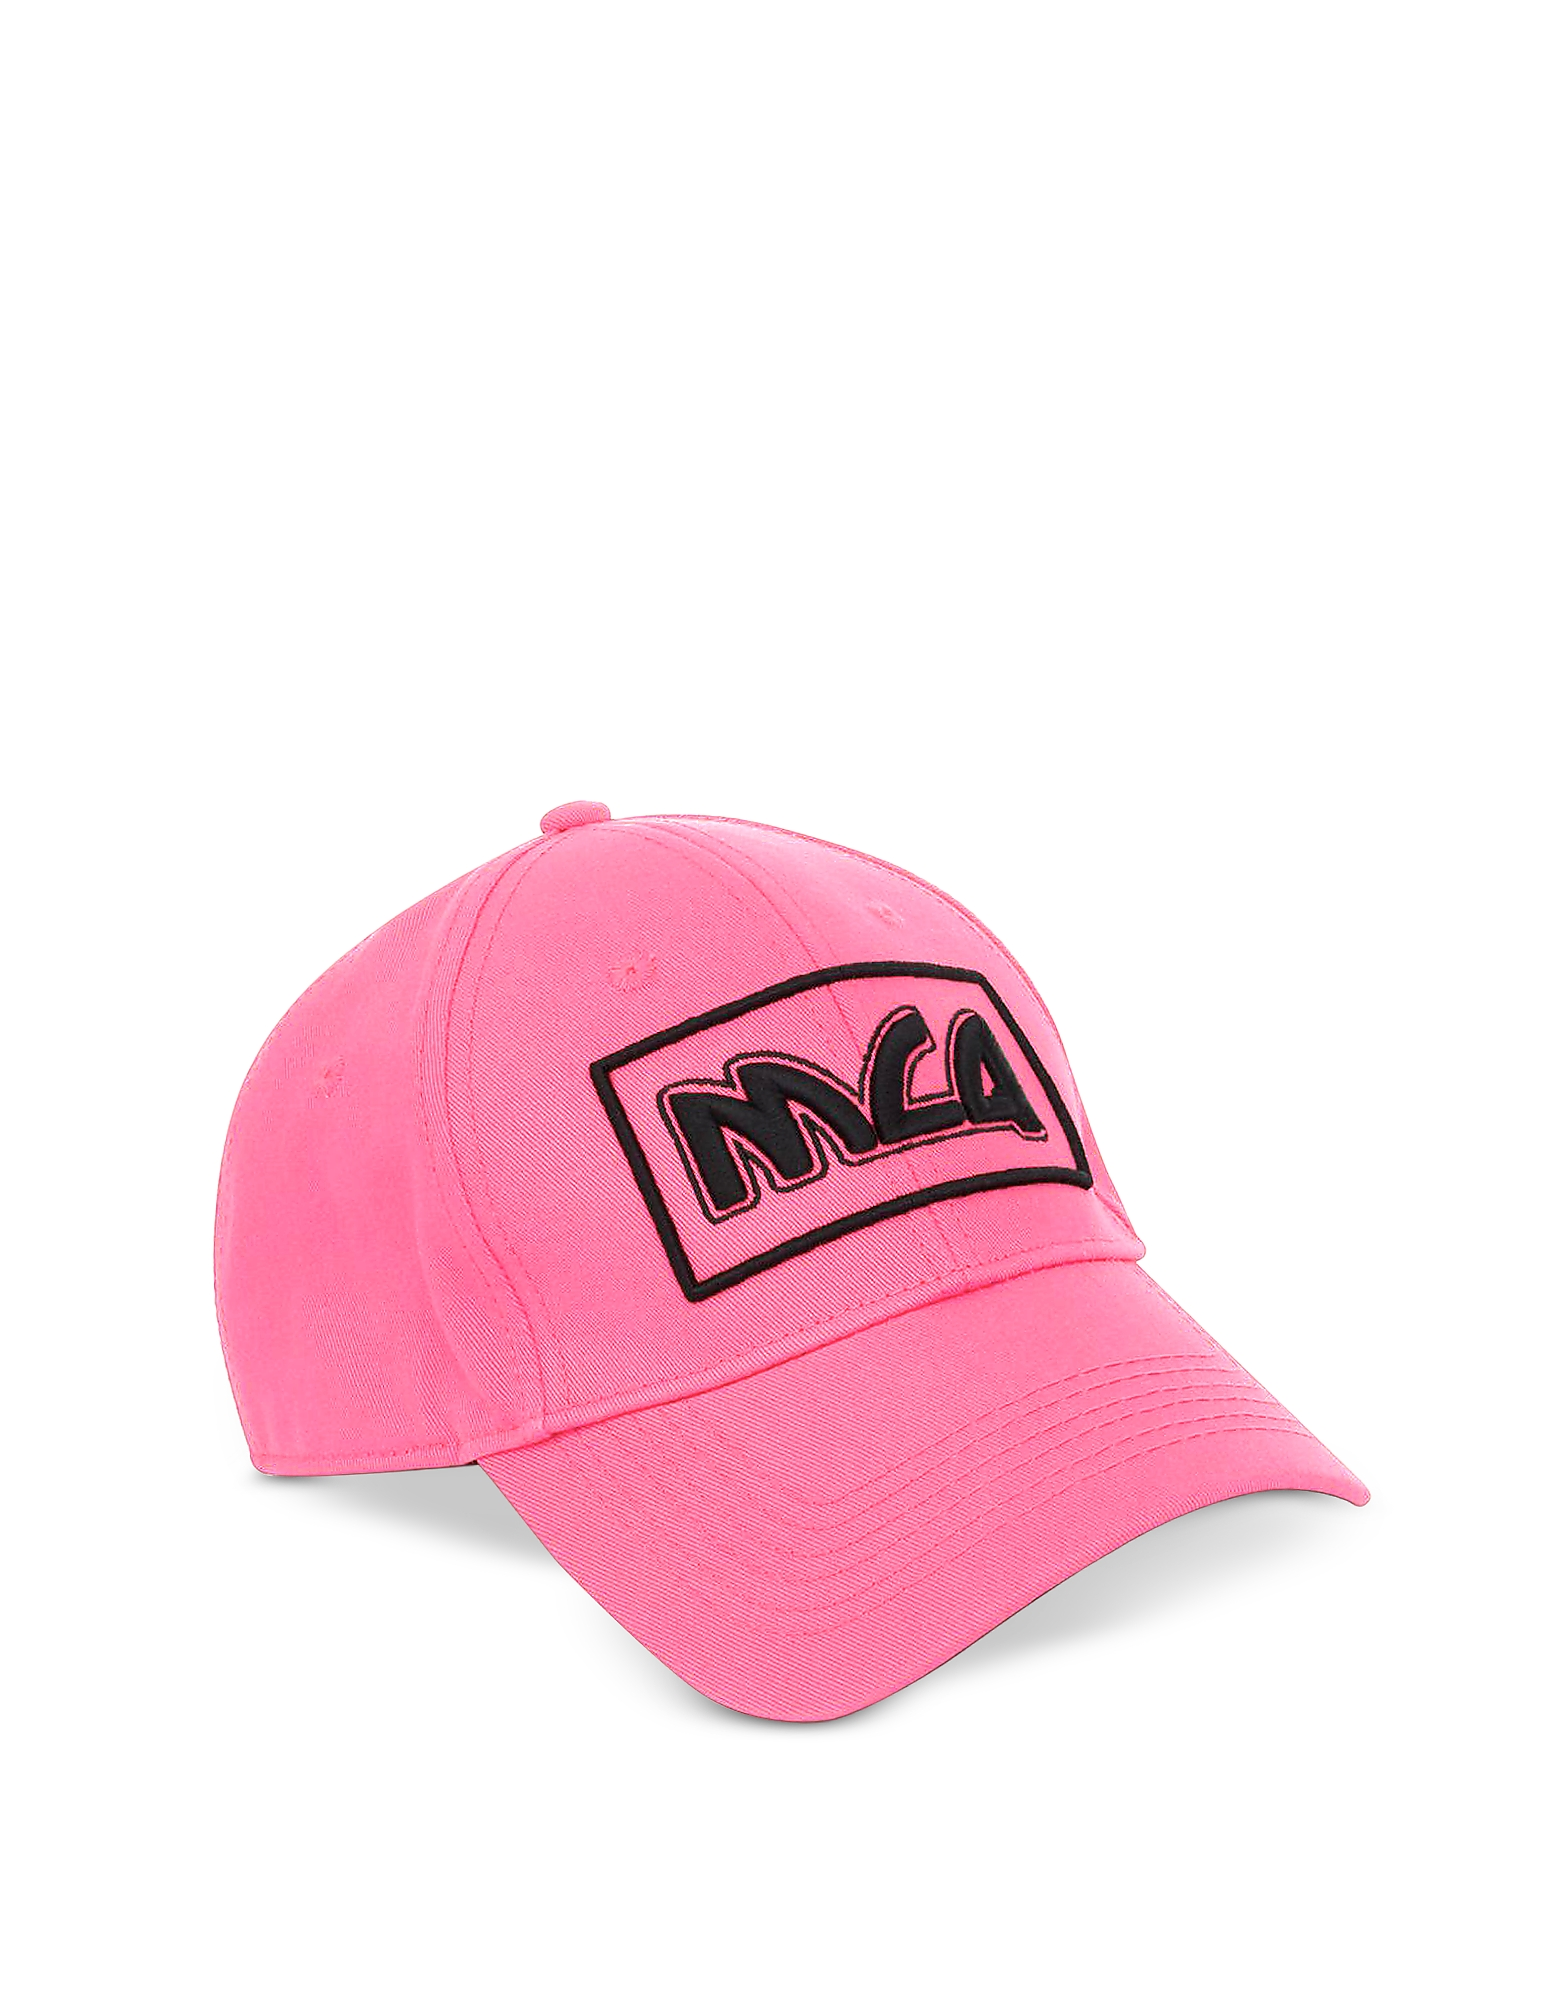 McQ Alexander McQueen Men's Hats, Neon Pink Metal Logo Cotton Baseball Cap